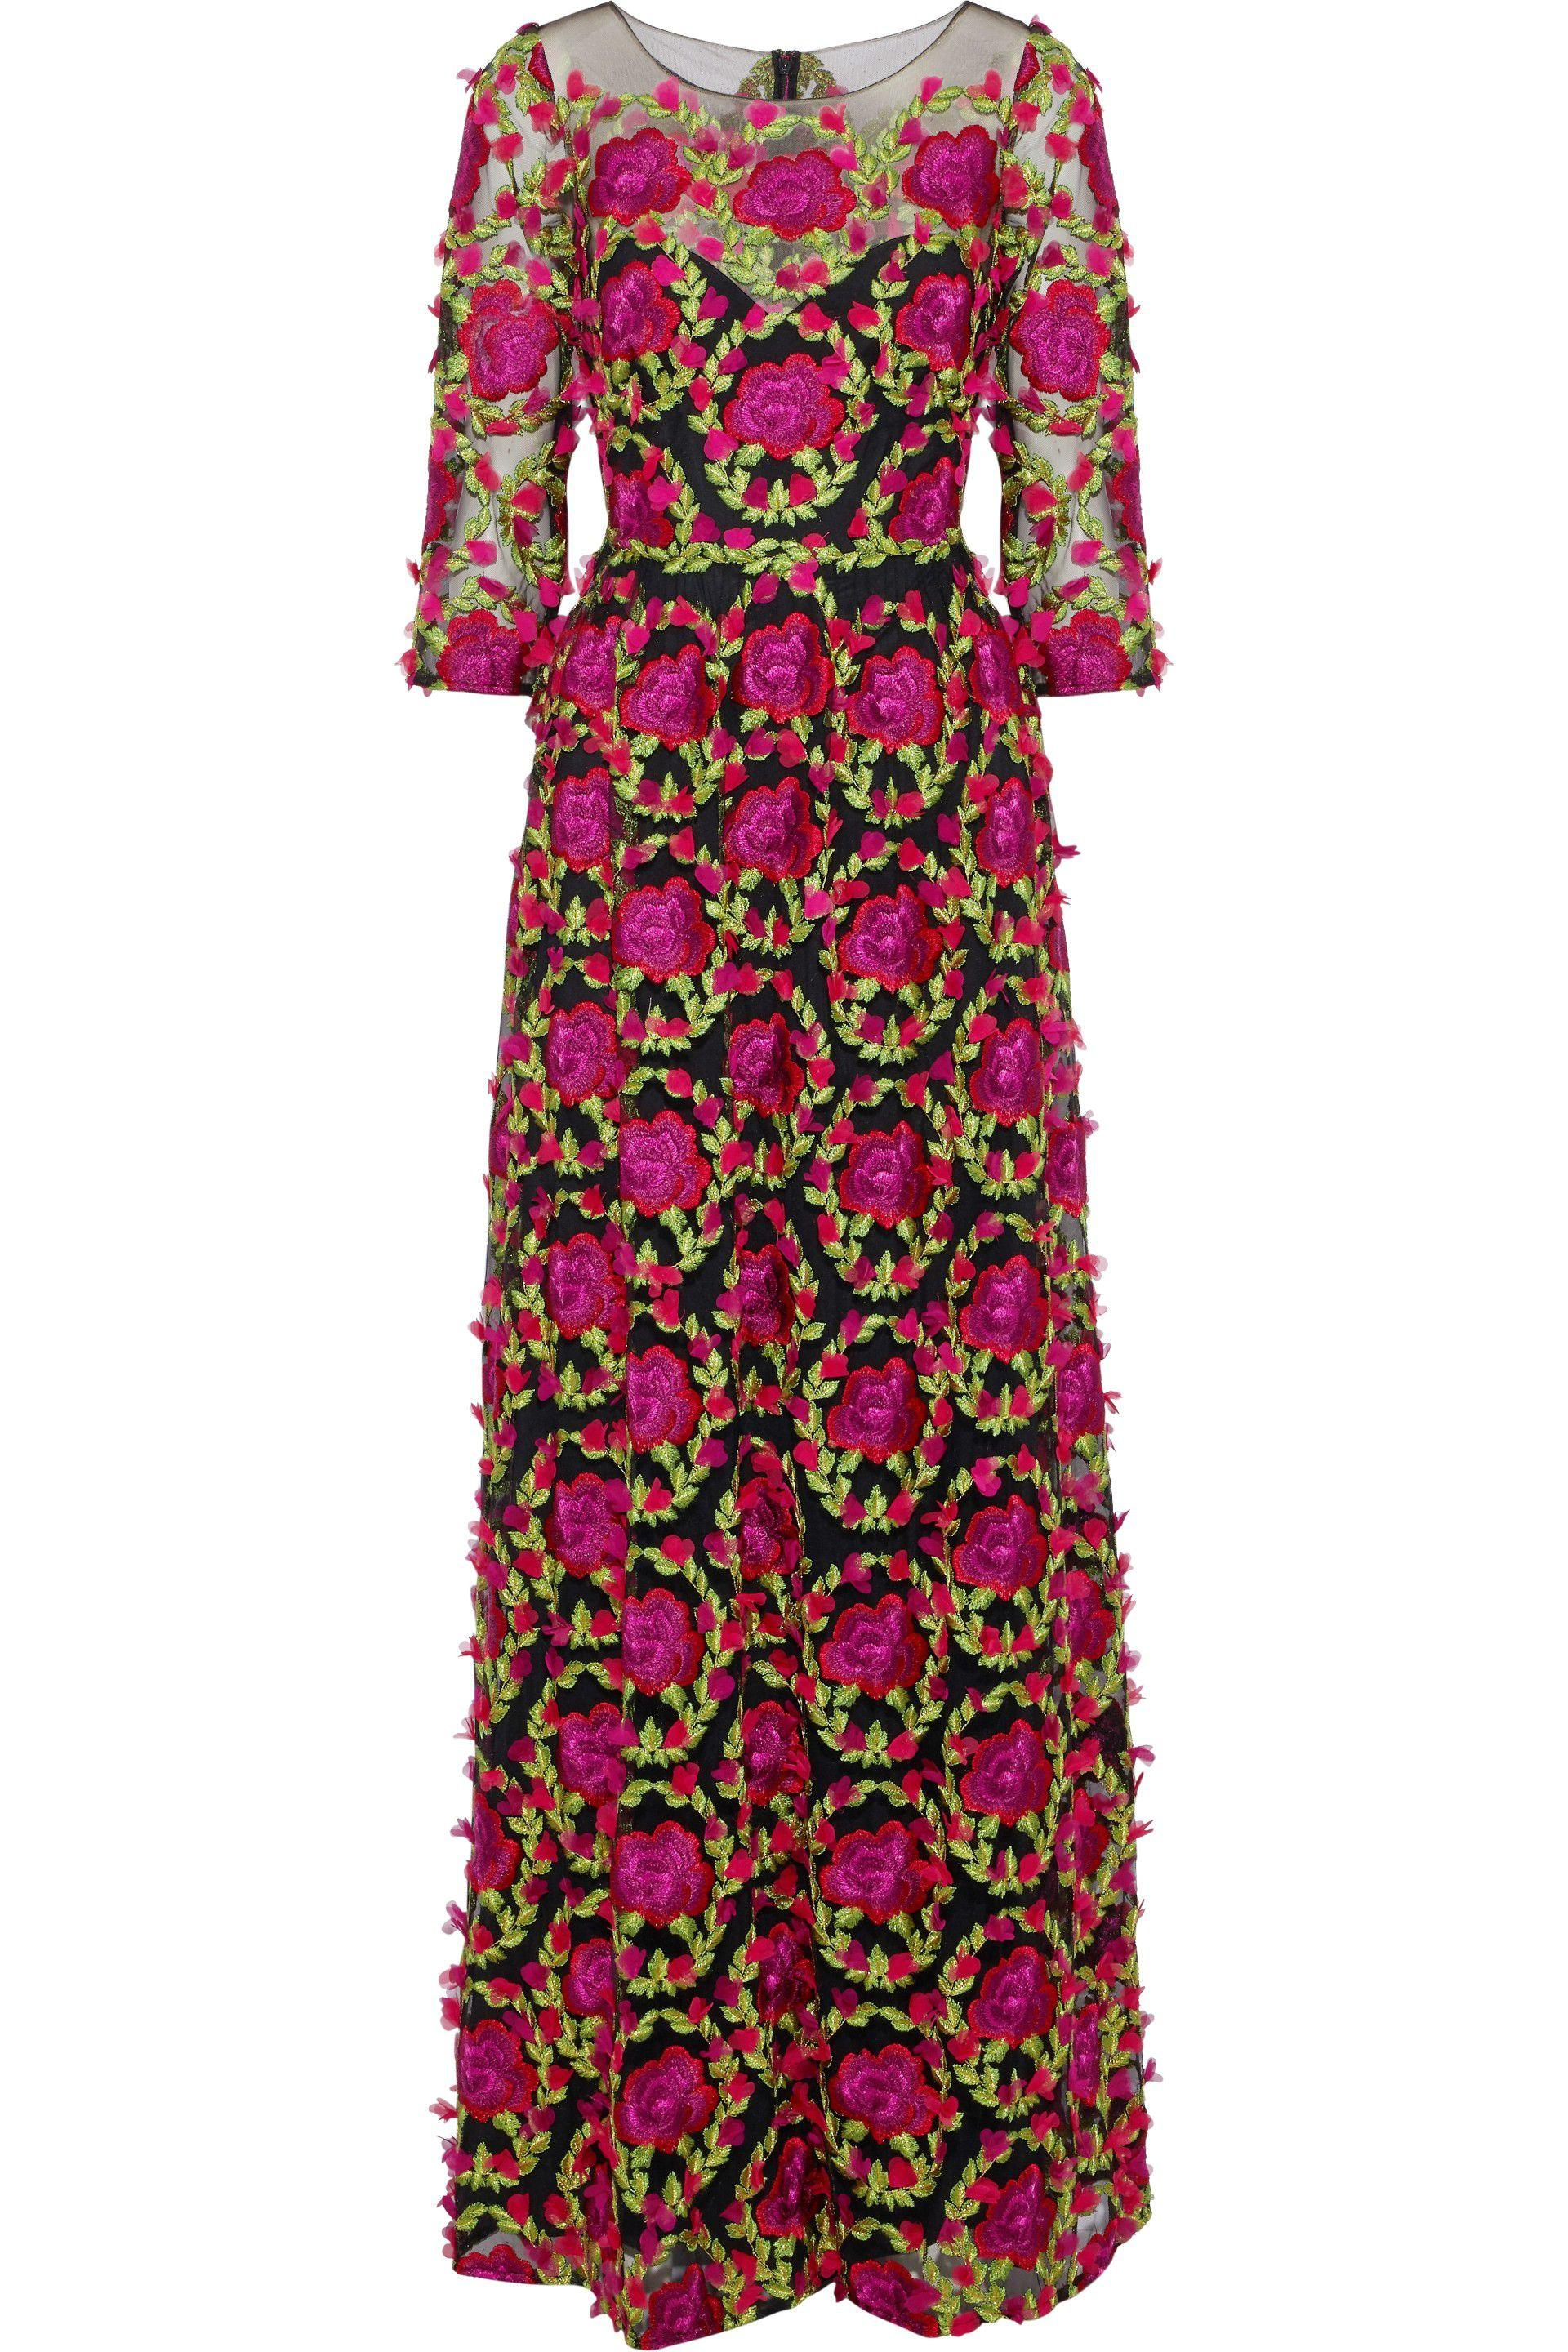 32a2cefac8 Marchesa notte. Women's Woman Floral-appliquéd Embroidered Tulle Gown  Fuchsia